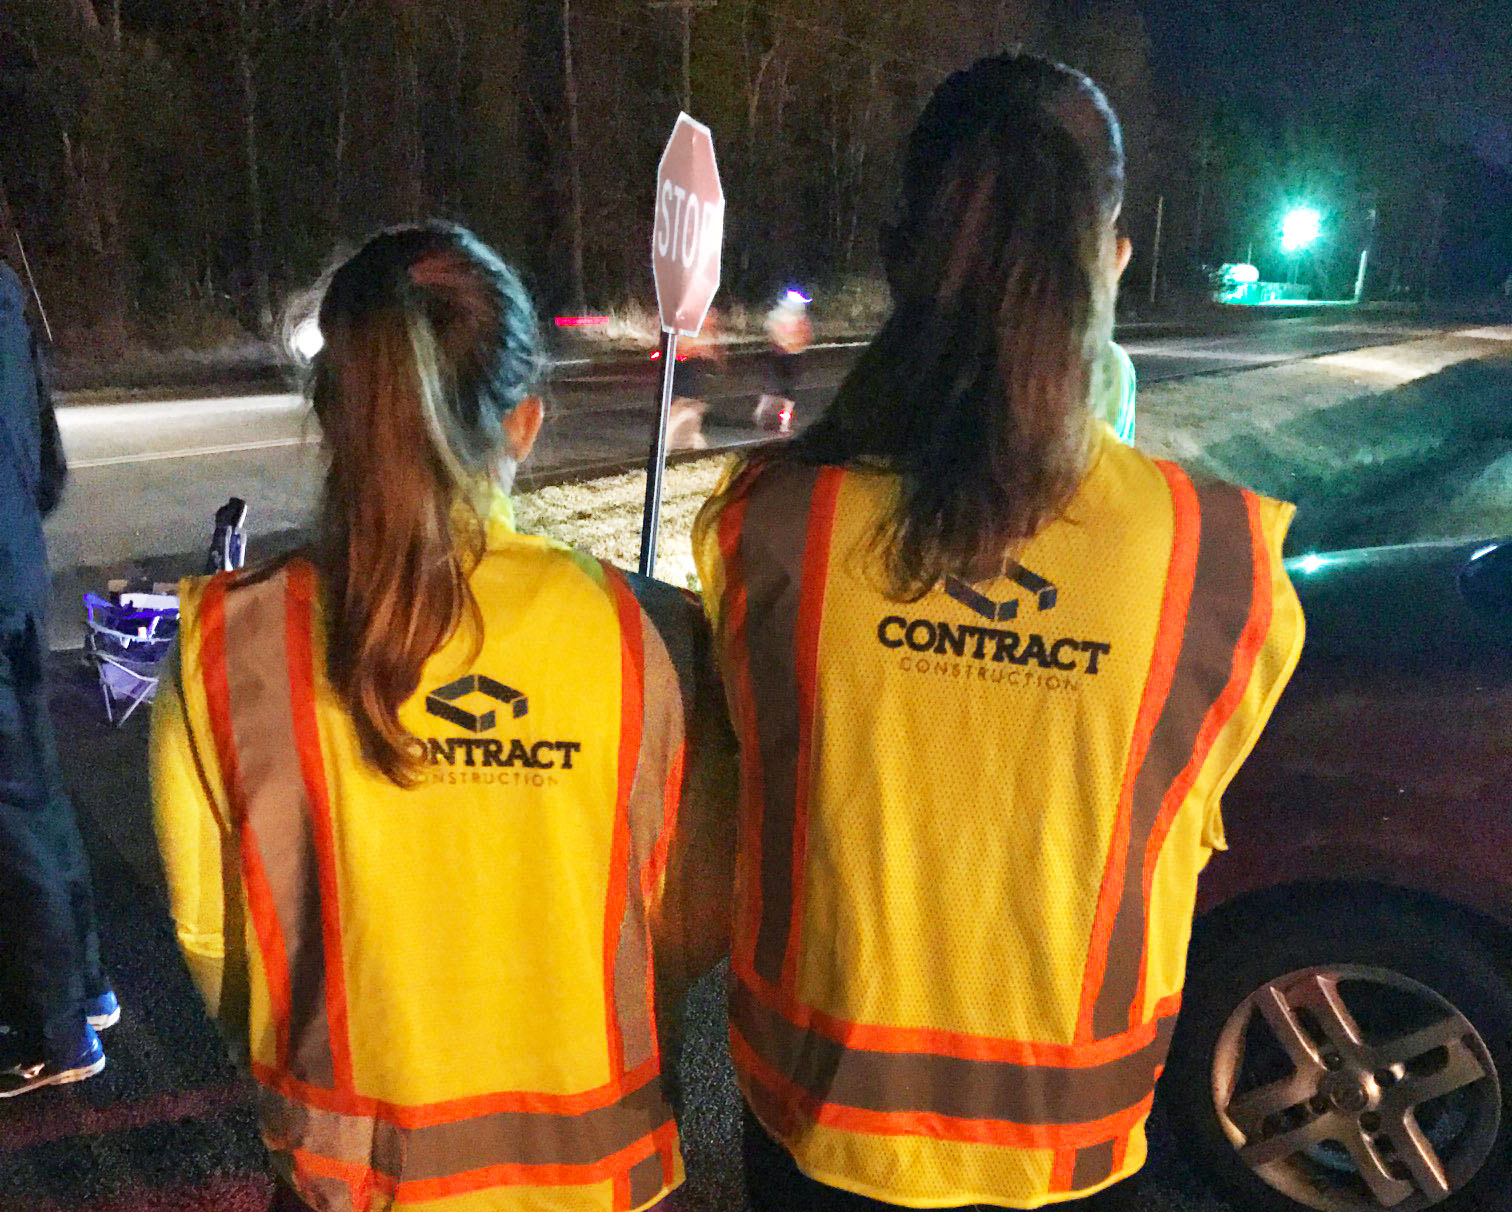 Contract Construction provides Palmetto200 Firefly team racers with safety vests